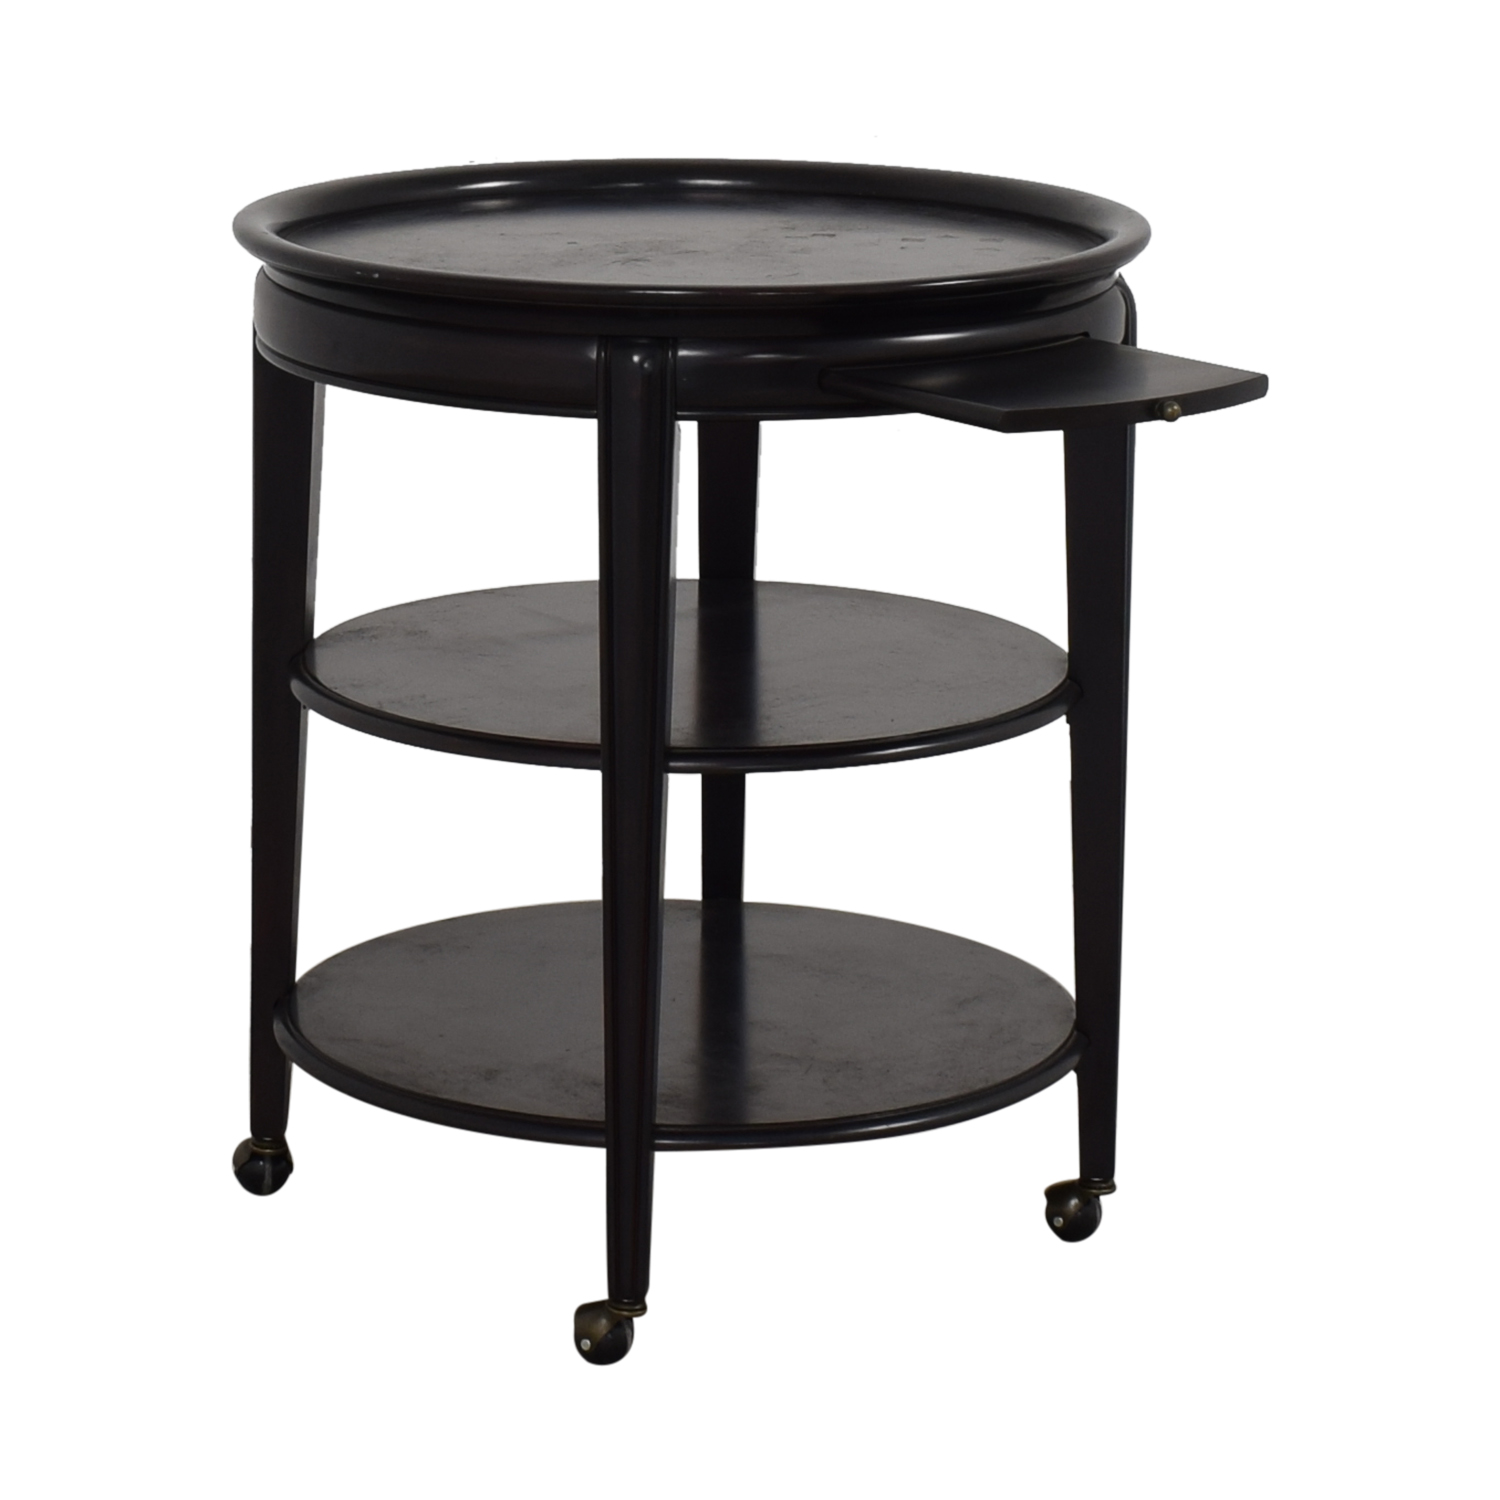 Hooker Furniture Seven Seas by Hooker Furniture Circular Accent Table discount